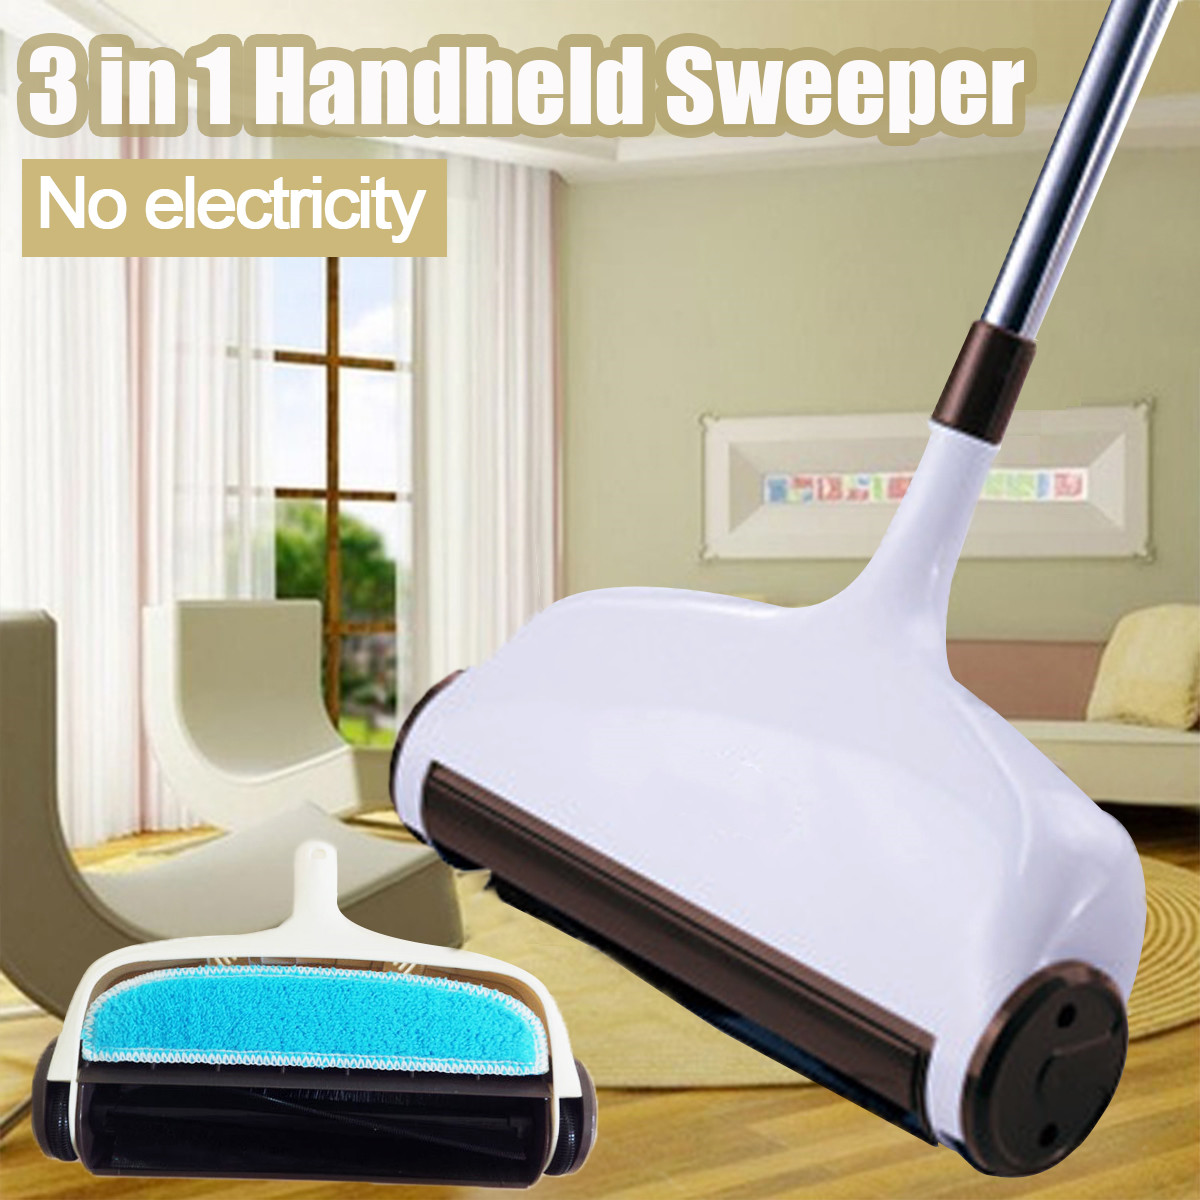 Cleaner-Tools Sweepers-Machine Sweeping-Dustpan Magic Broom Hand-Push Household Stainless